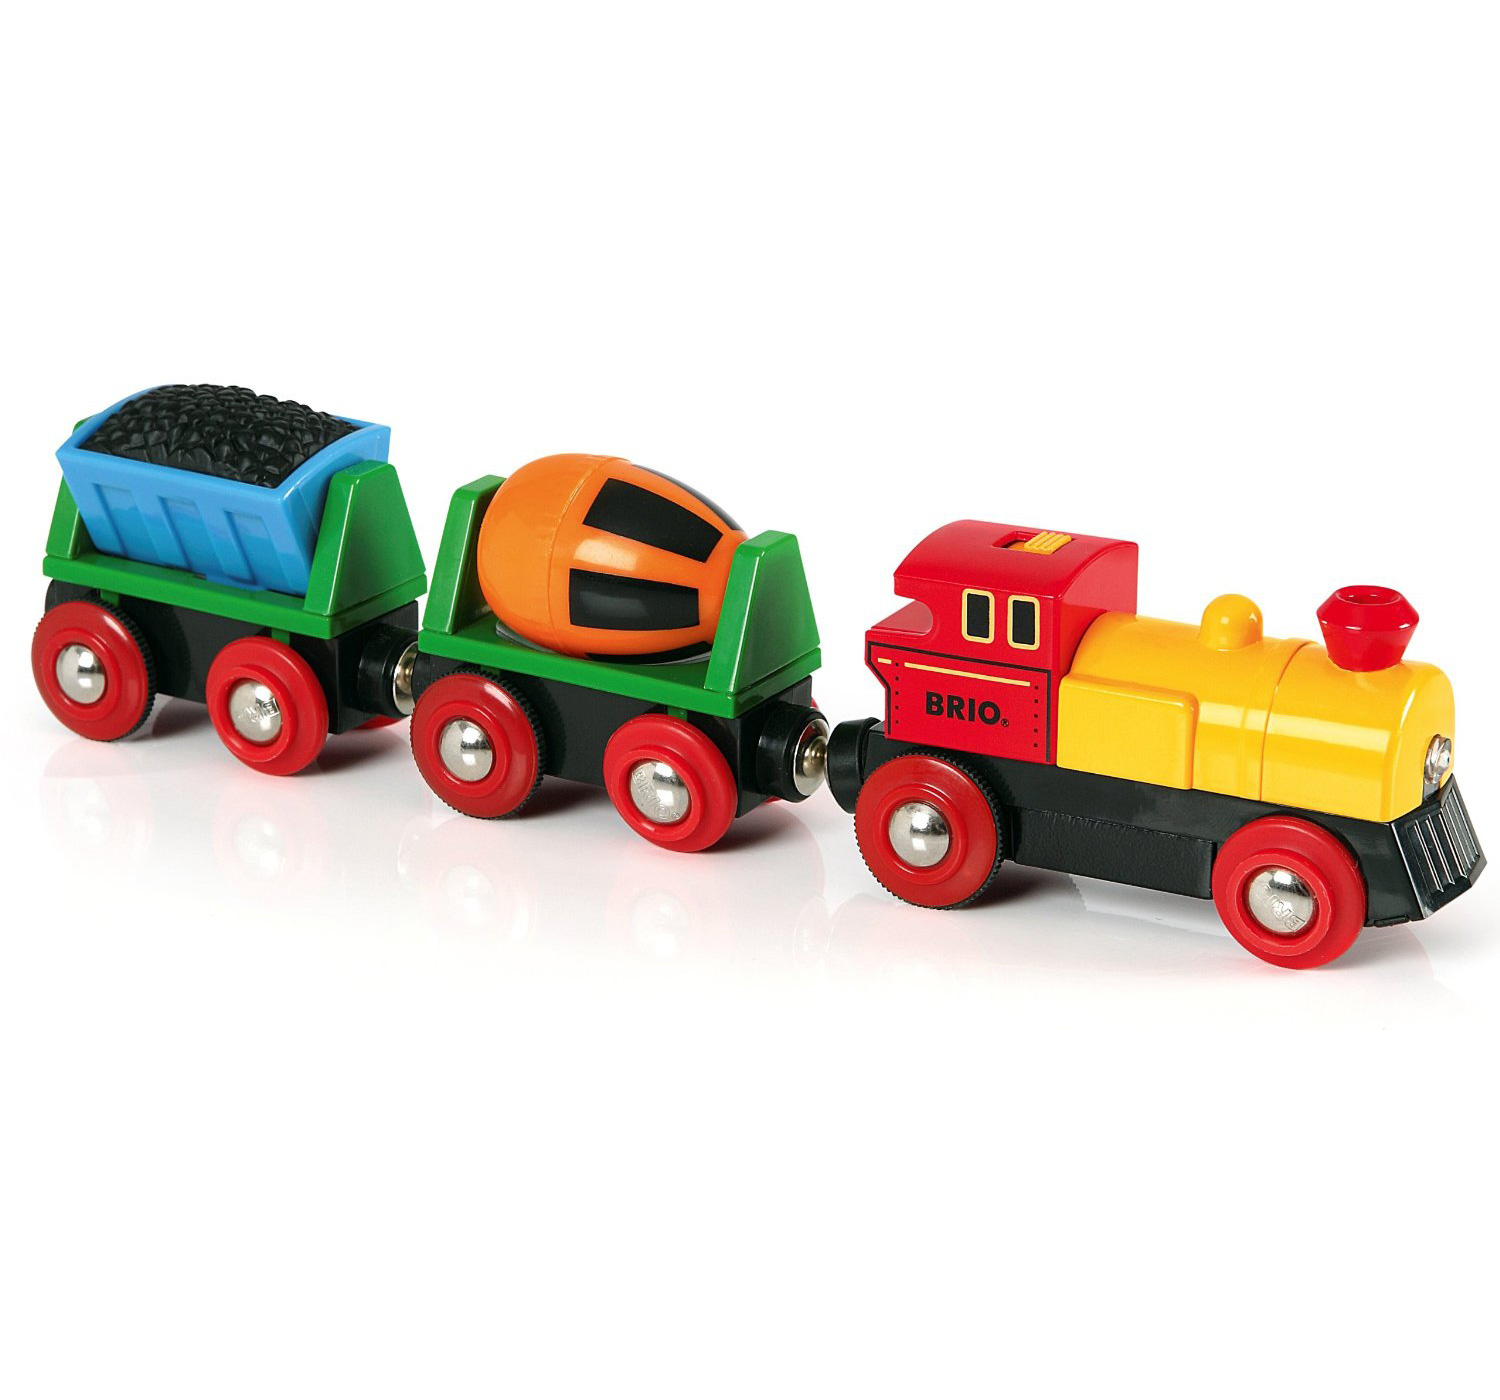 brio battery operated action train child nursery toy. Black Bedroom Furniture Sets. Home Design Ideas